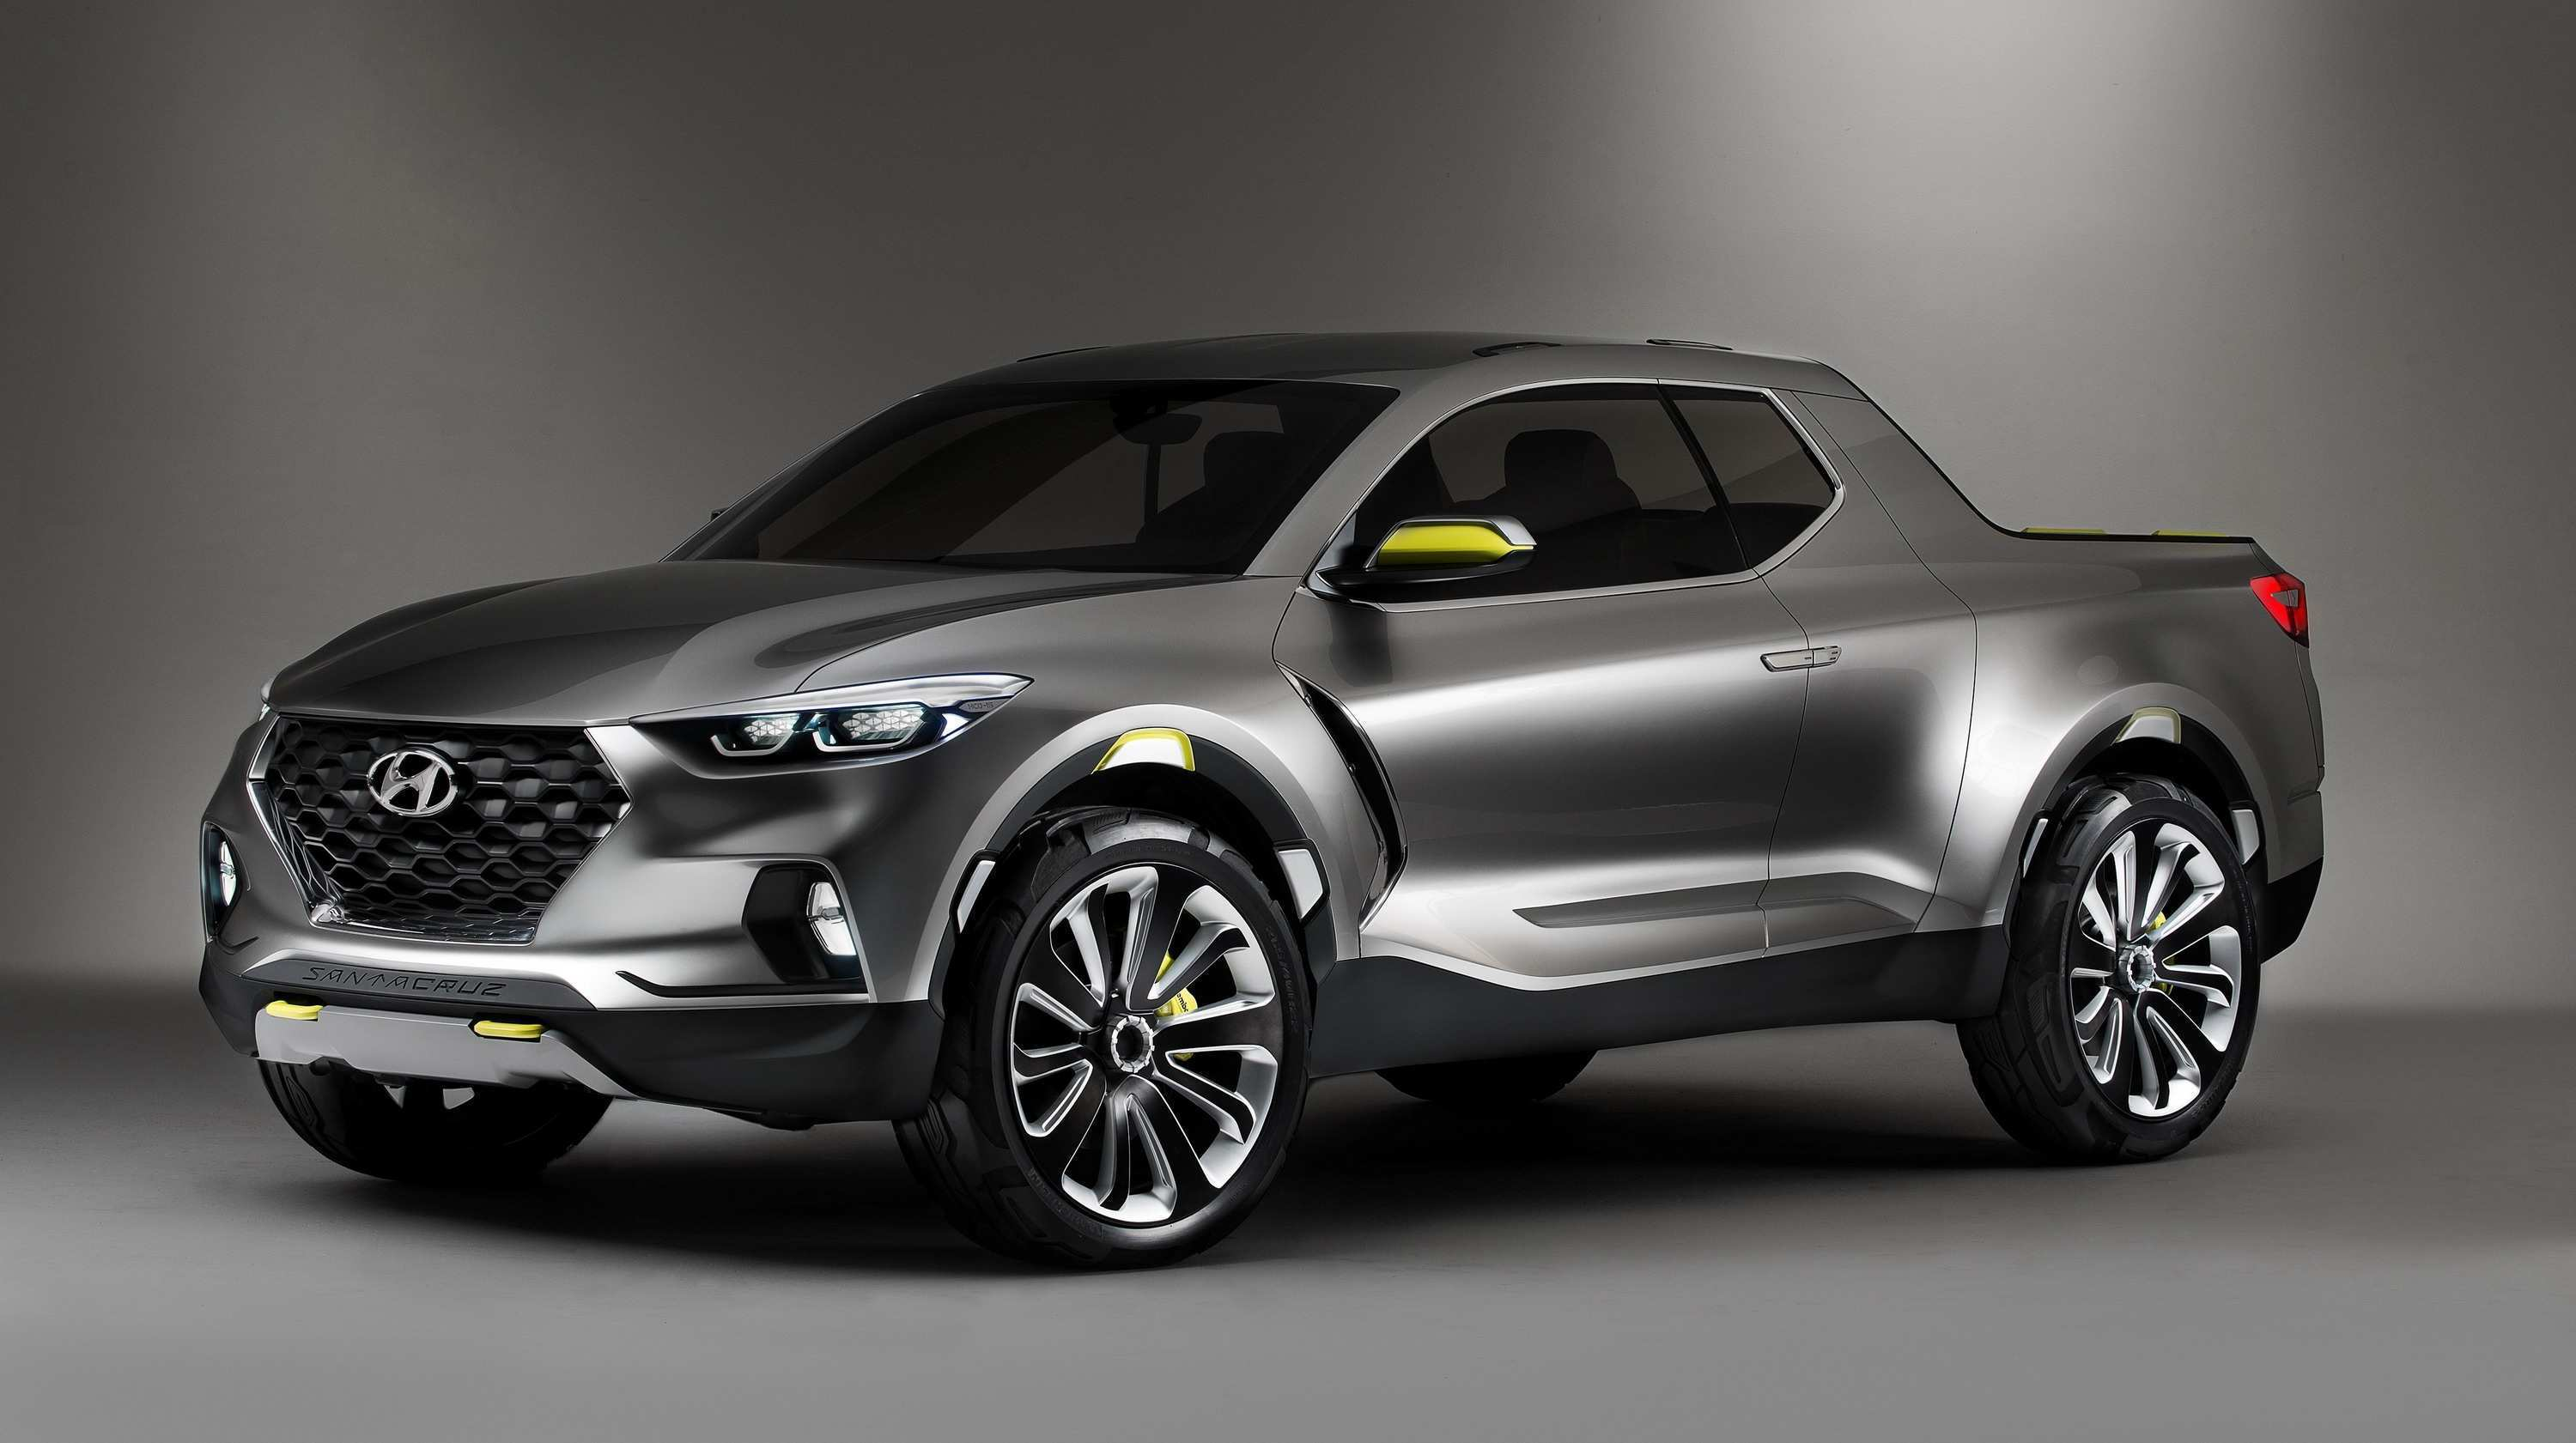 26 New Hyundai Concept 2020 Review And Release Date